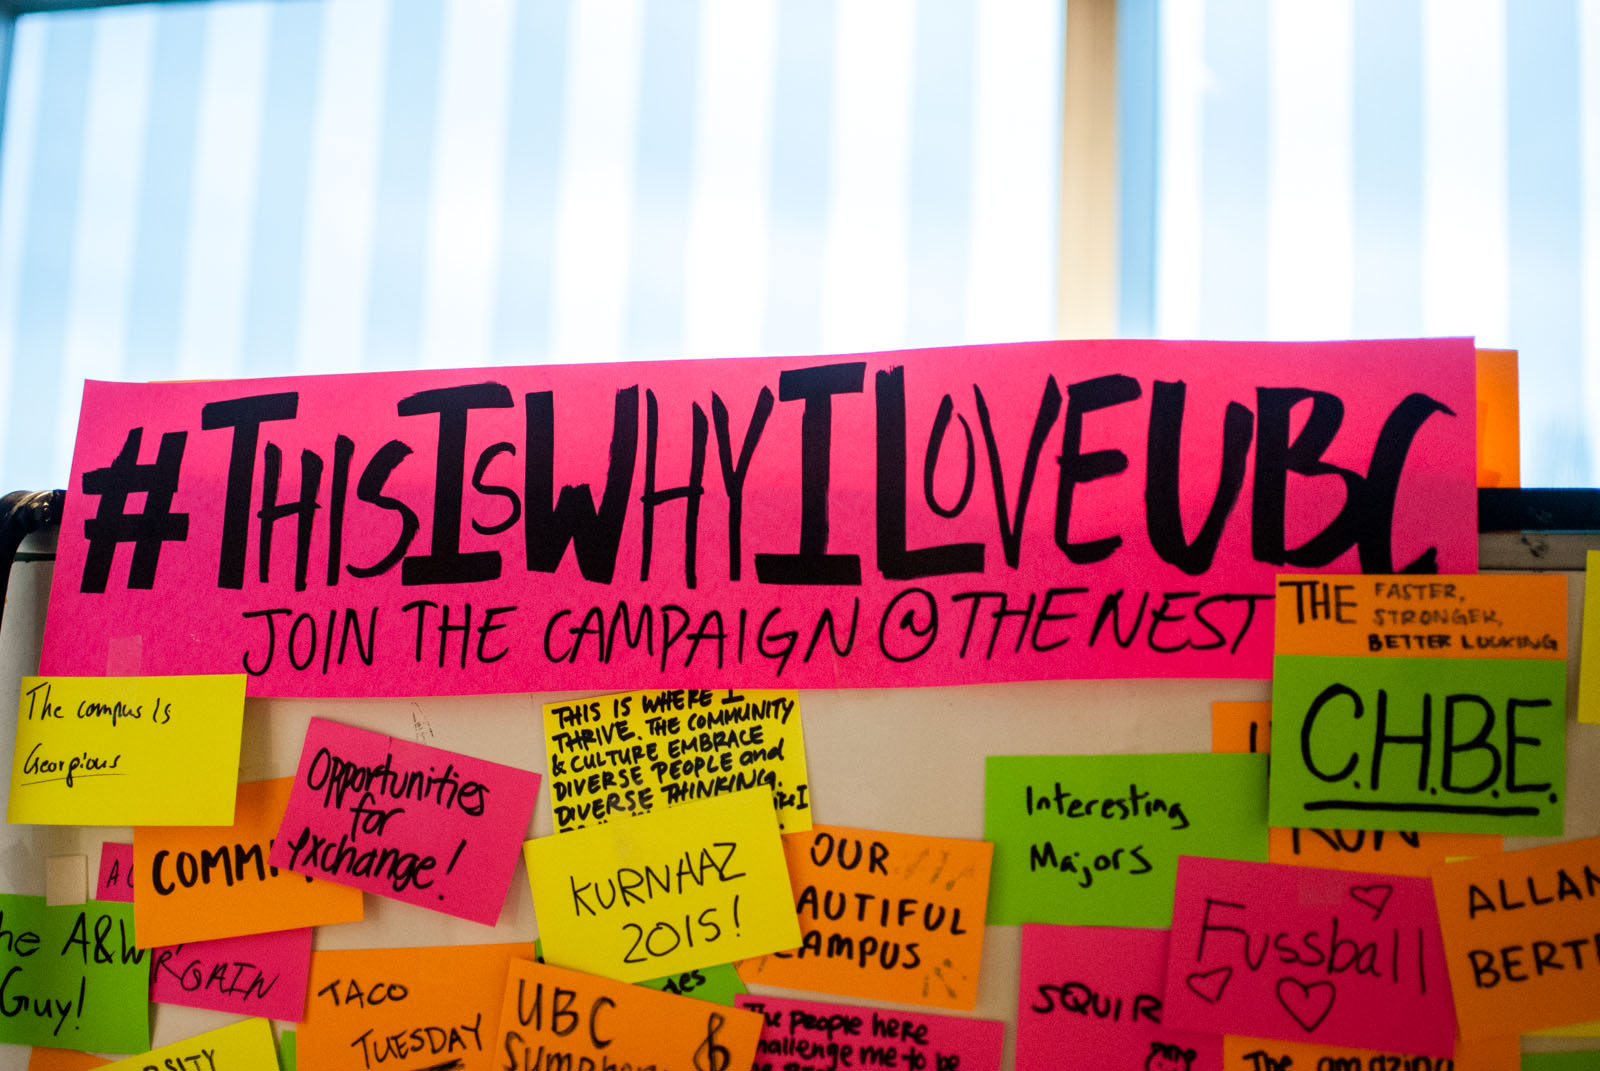 Hundreds of students wrote out what they loved about UBC for a campaign run by the AMS and The Party Calendar in reaction to the proposed international tuition increases.